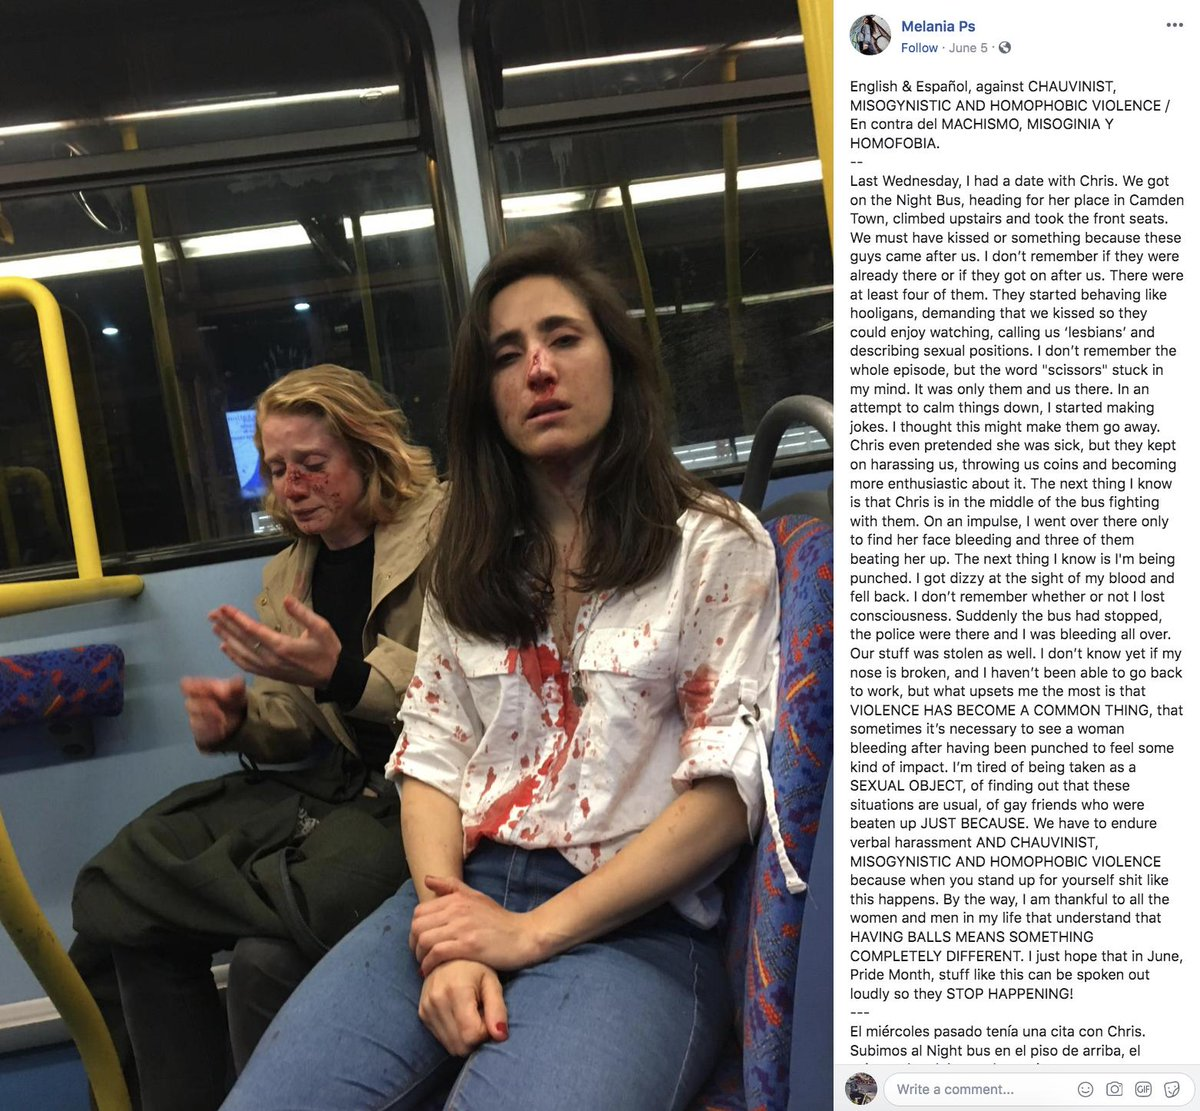 Police say two women were assaulted and robbed by four men in a homophobic attack on a London bus. They are looking for witnesses.  A woman said on Facebook that men beat up her and her date after they refused to kiss for them.